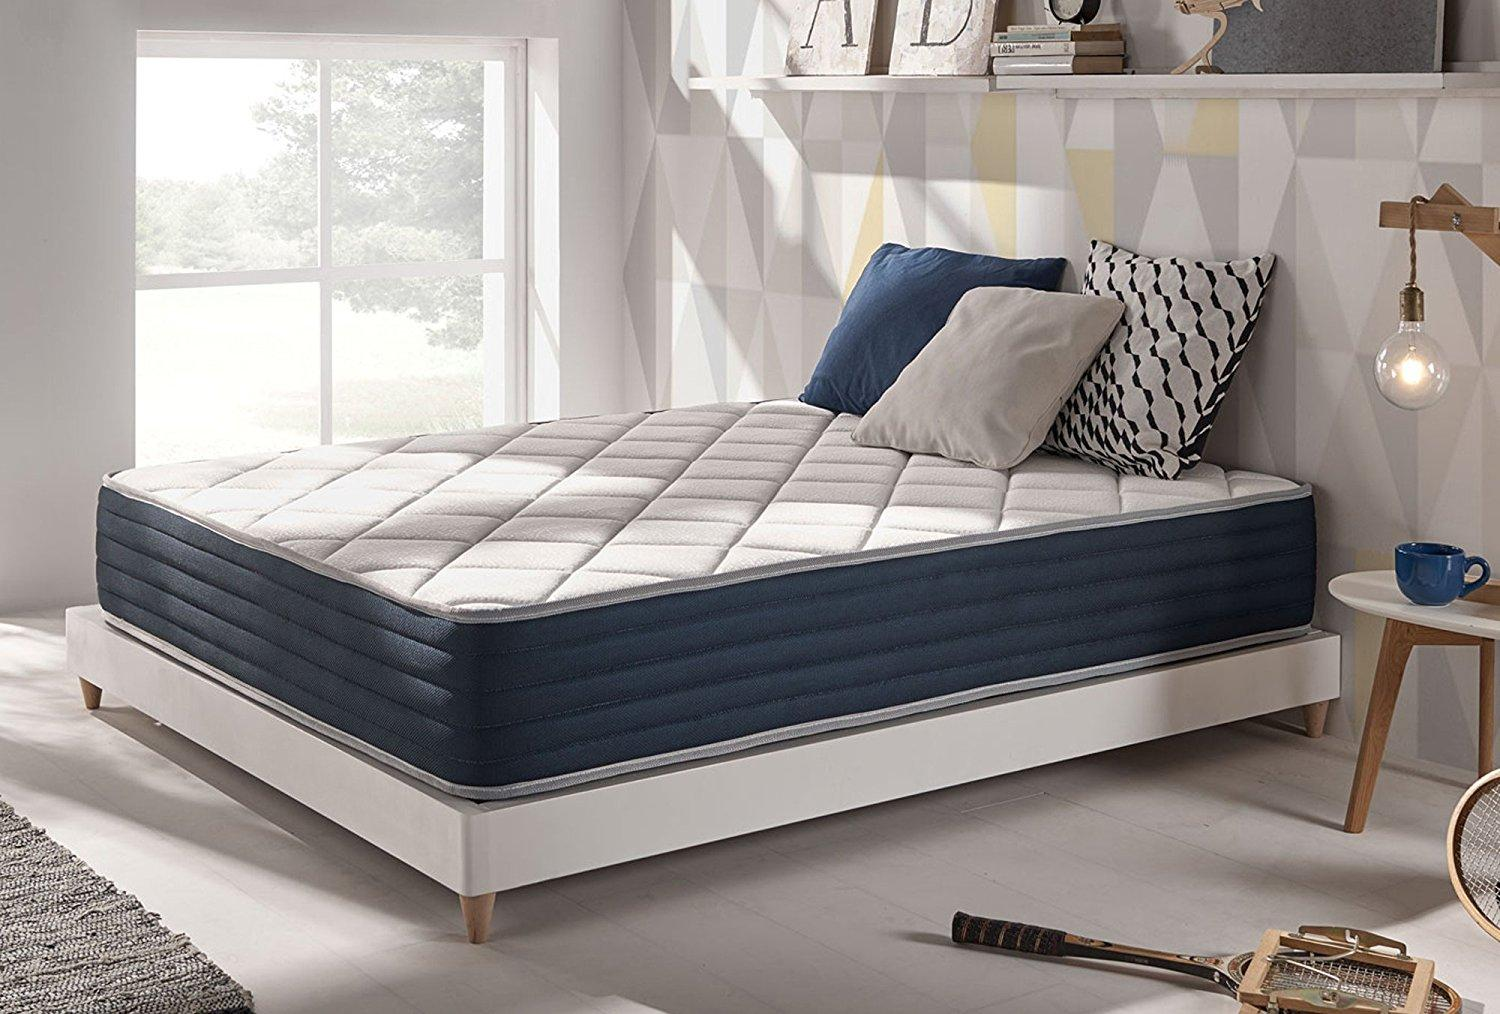 Naturalex RoyalVisco Blue Latex Memory Foam Double Sided Mattress